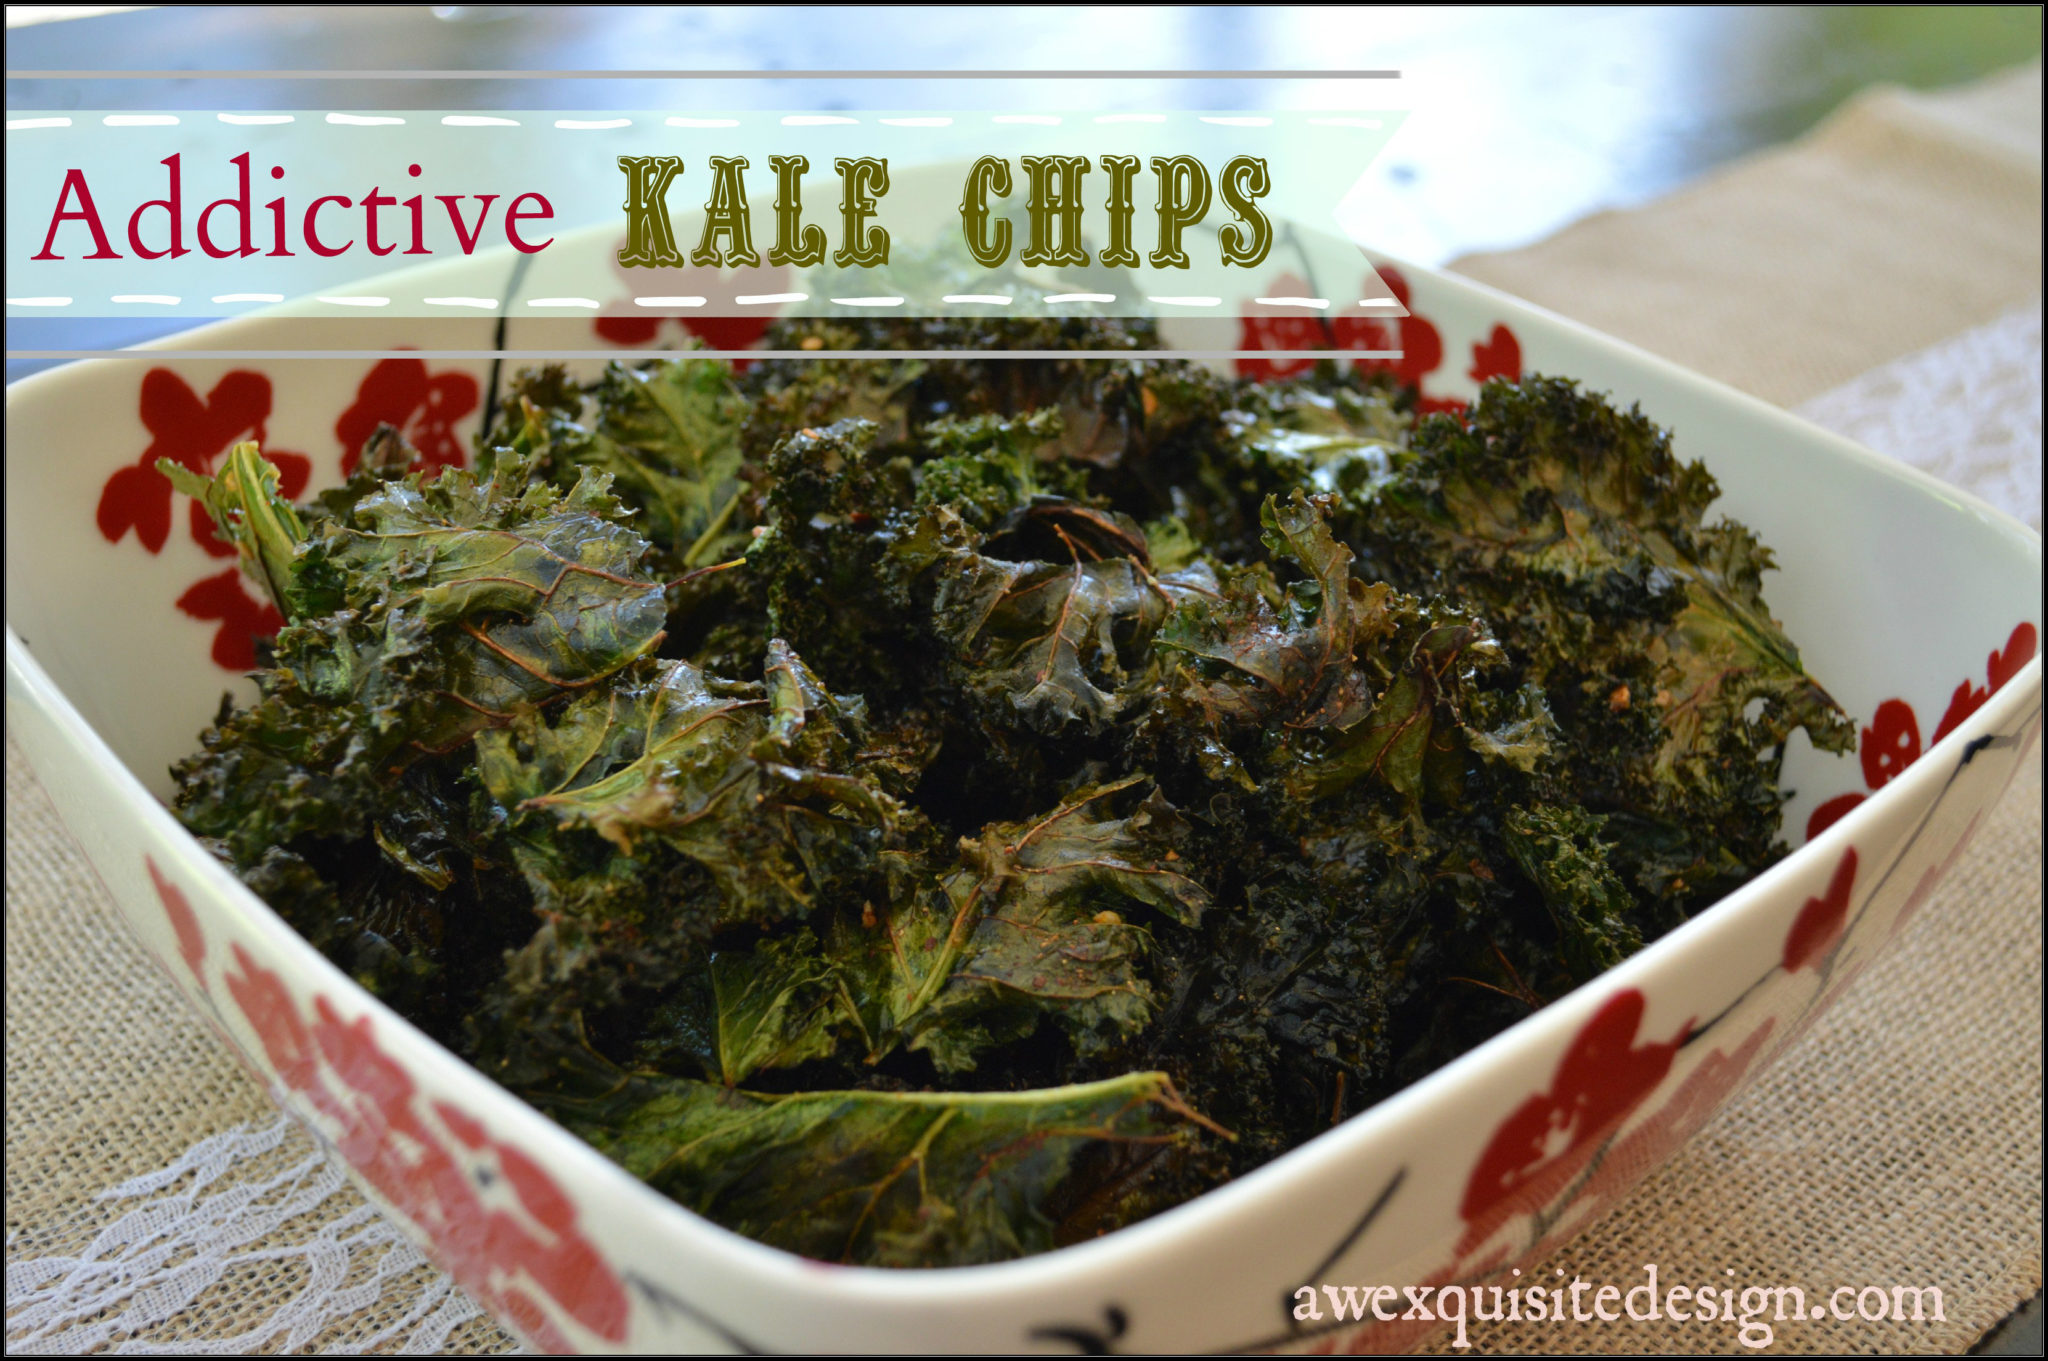 Addictive Kale Chips